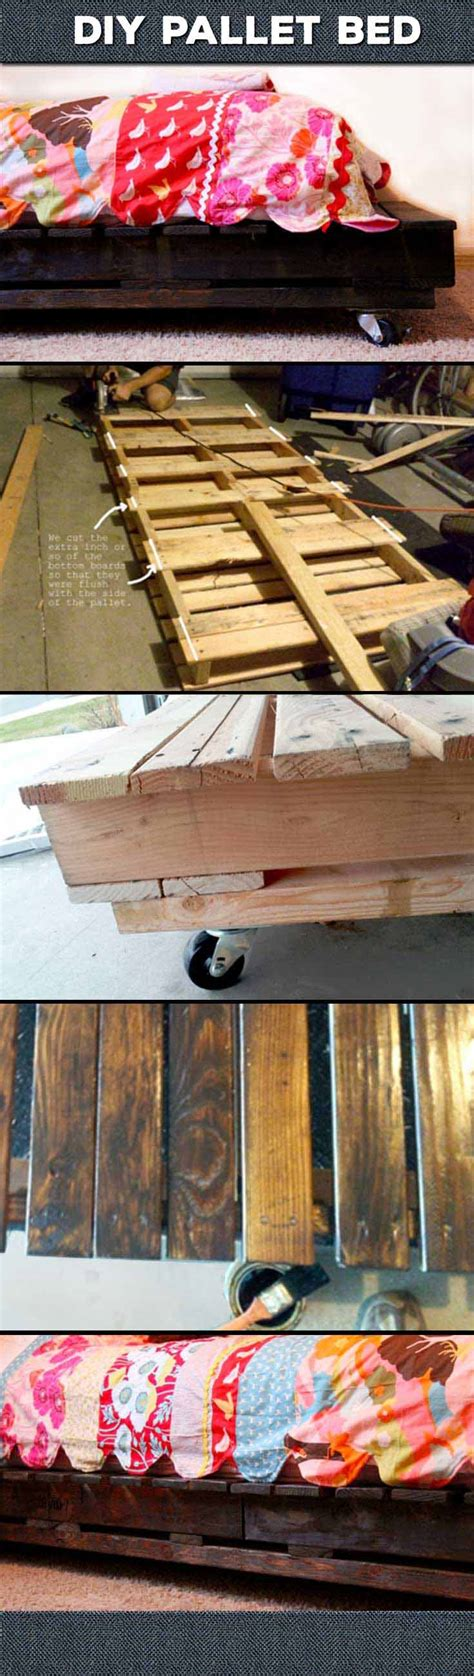 diy home decor with pallets 29 rustic diy home decor ideas Diy Home Decor With Pallets